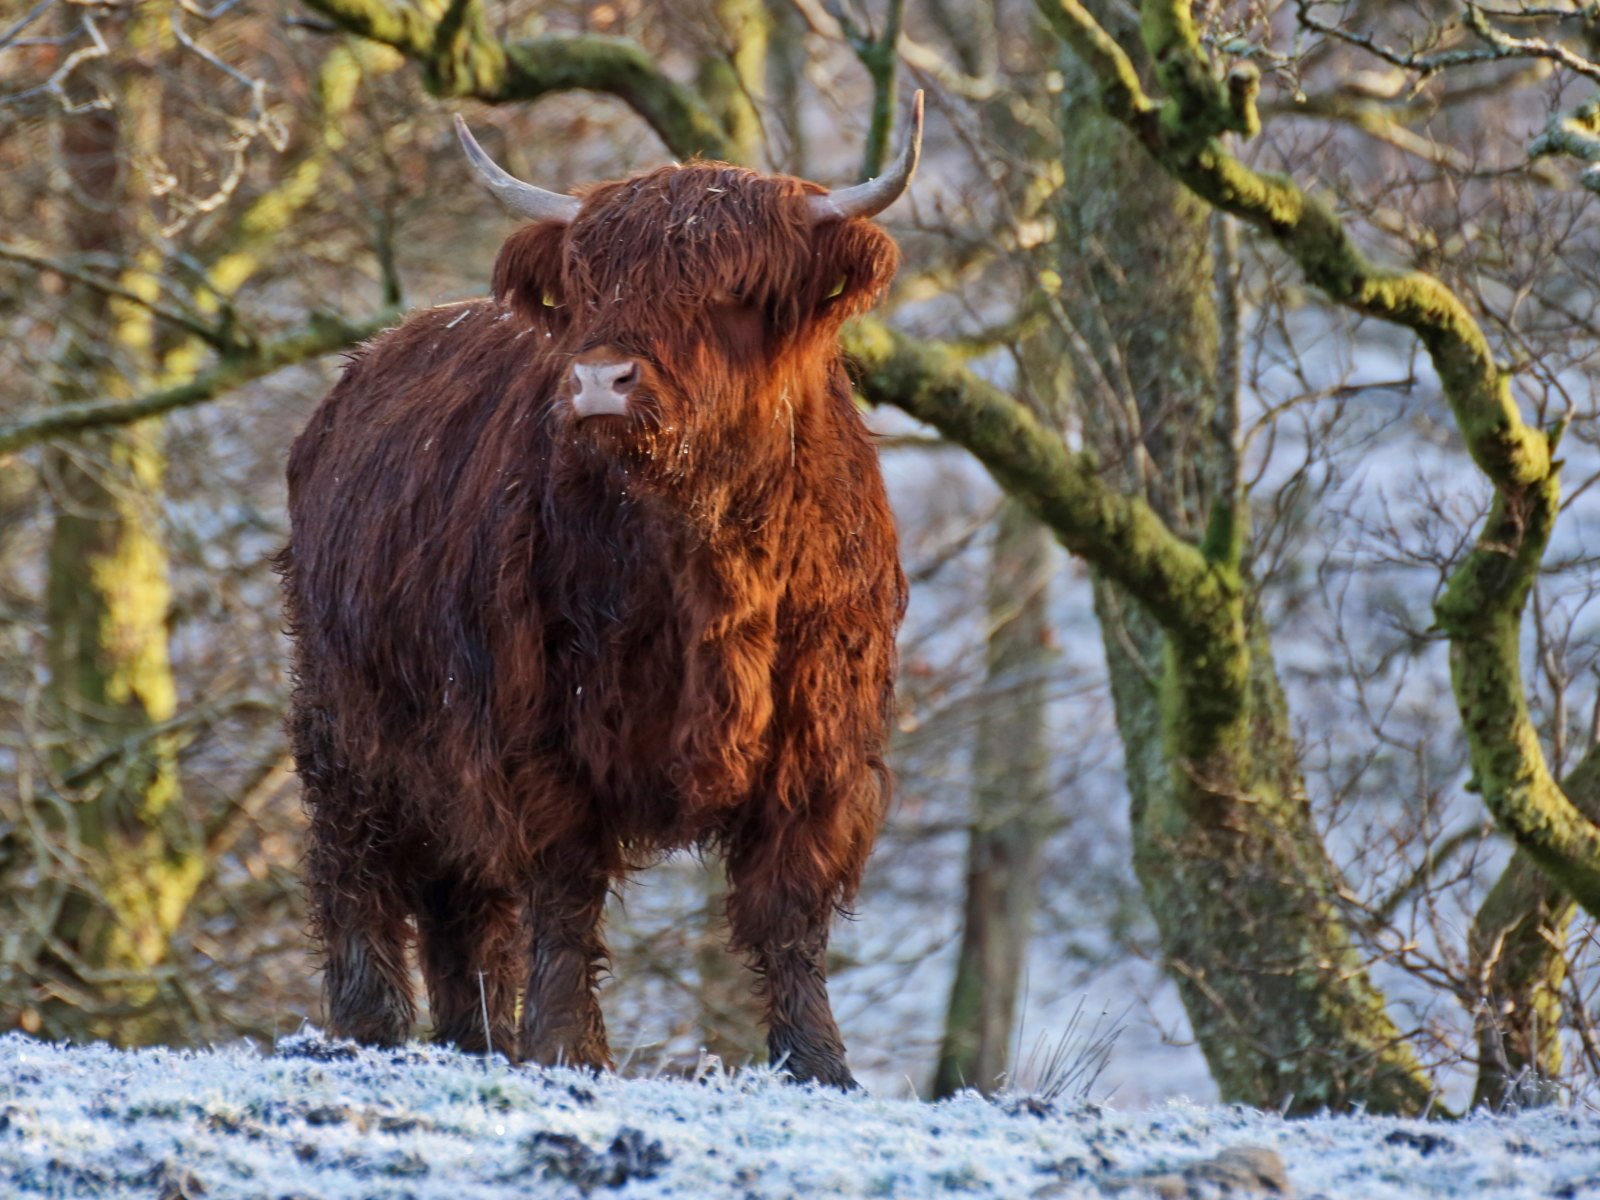 Scottish Highland Cow in the Snow | Flickr - Photo Sharing! - photo#7